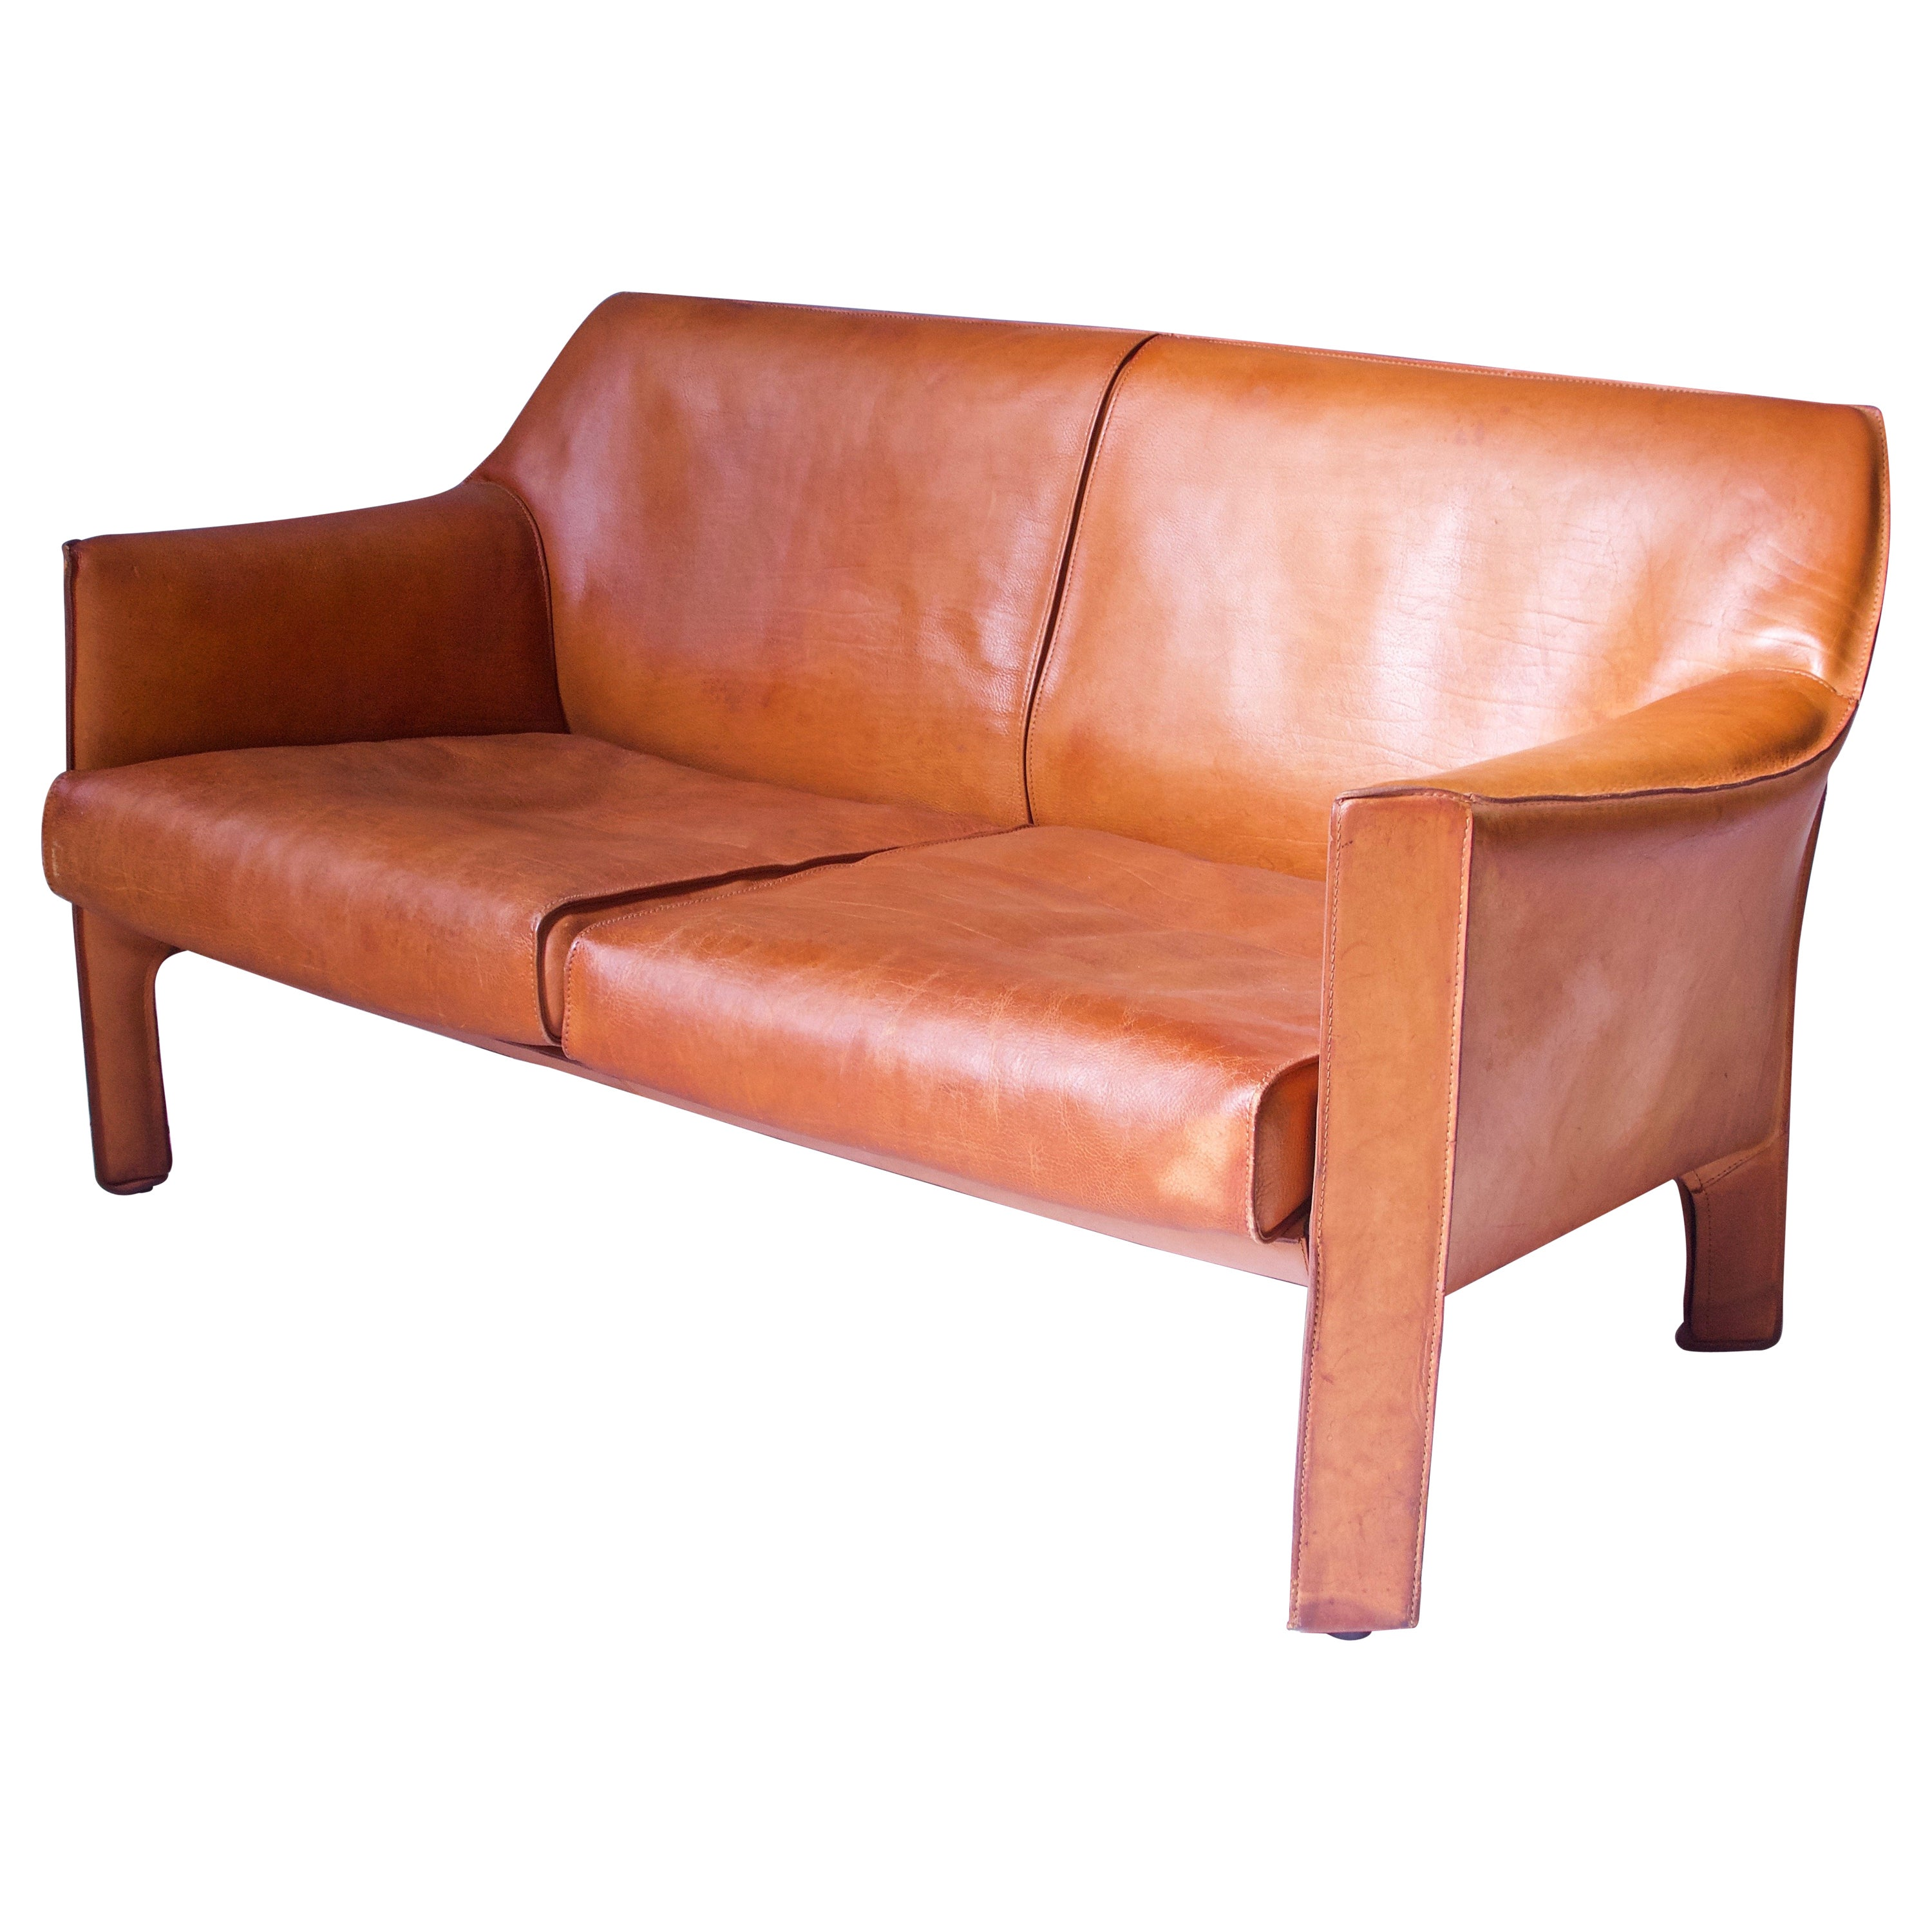 Vintage 415 Cab Two-Seat Sofa in Cognac Leather by Mario Bellini, Italy, 1987